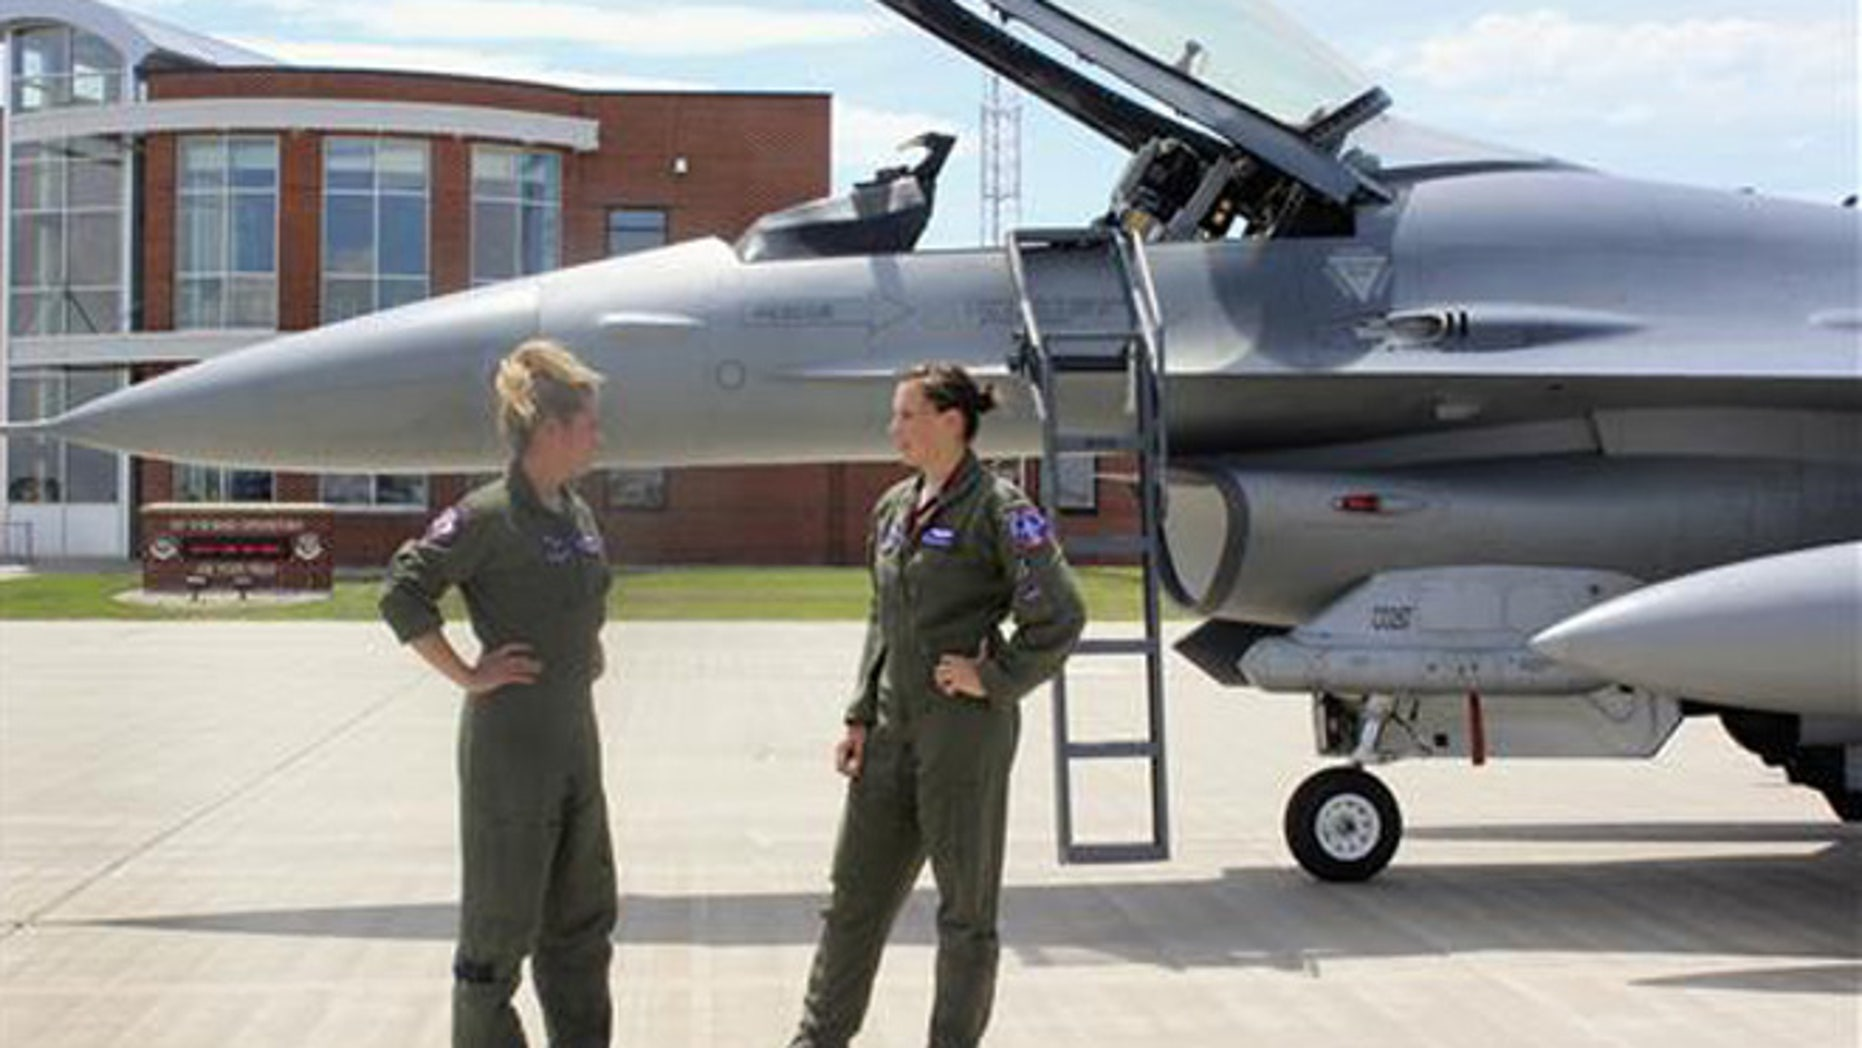 In this Tuesday, July 19, 2016, photo, Capt. Valerie Vanderostyne, left, and Capt. Shanon Davis, both with the South Dakota Air National Guard, chat alongside an F-16 Fighting Falcon at Joe Foss Field in Sioux Falls, S.D.